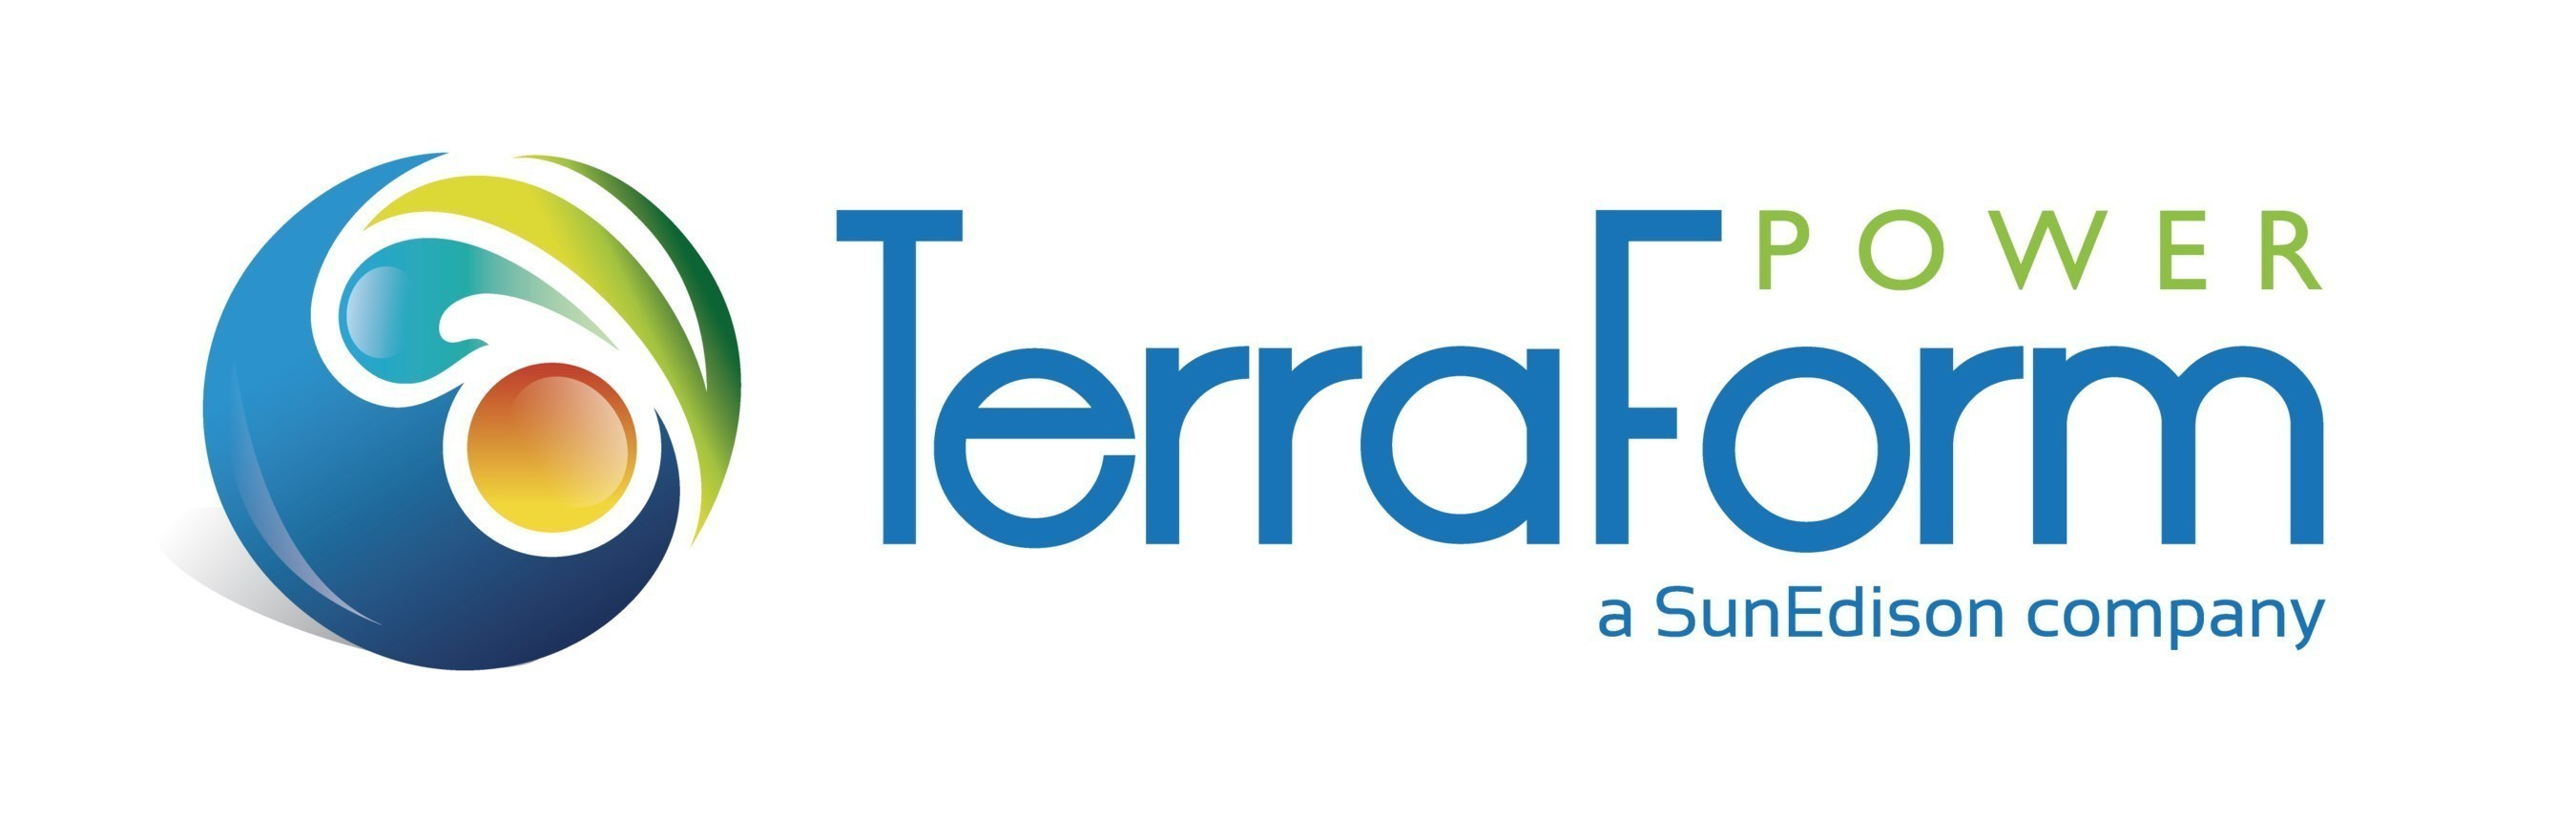 TerraForm Power logo